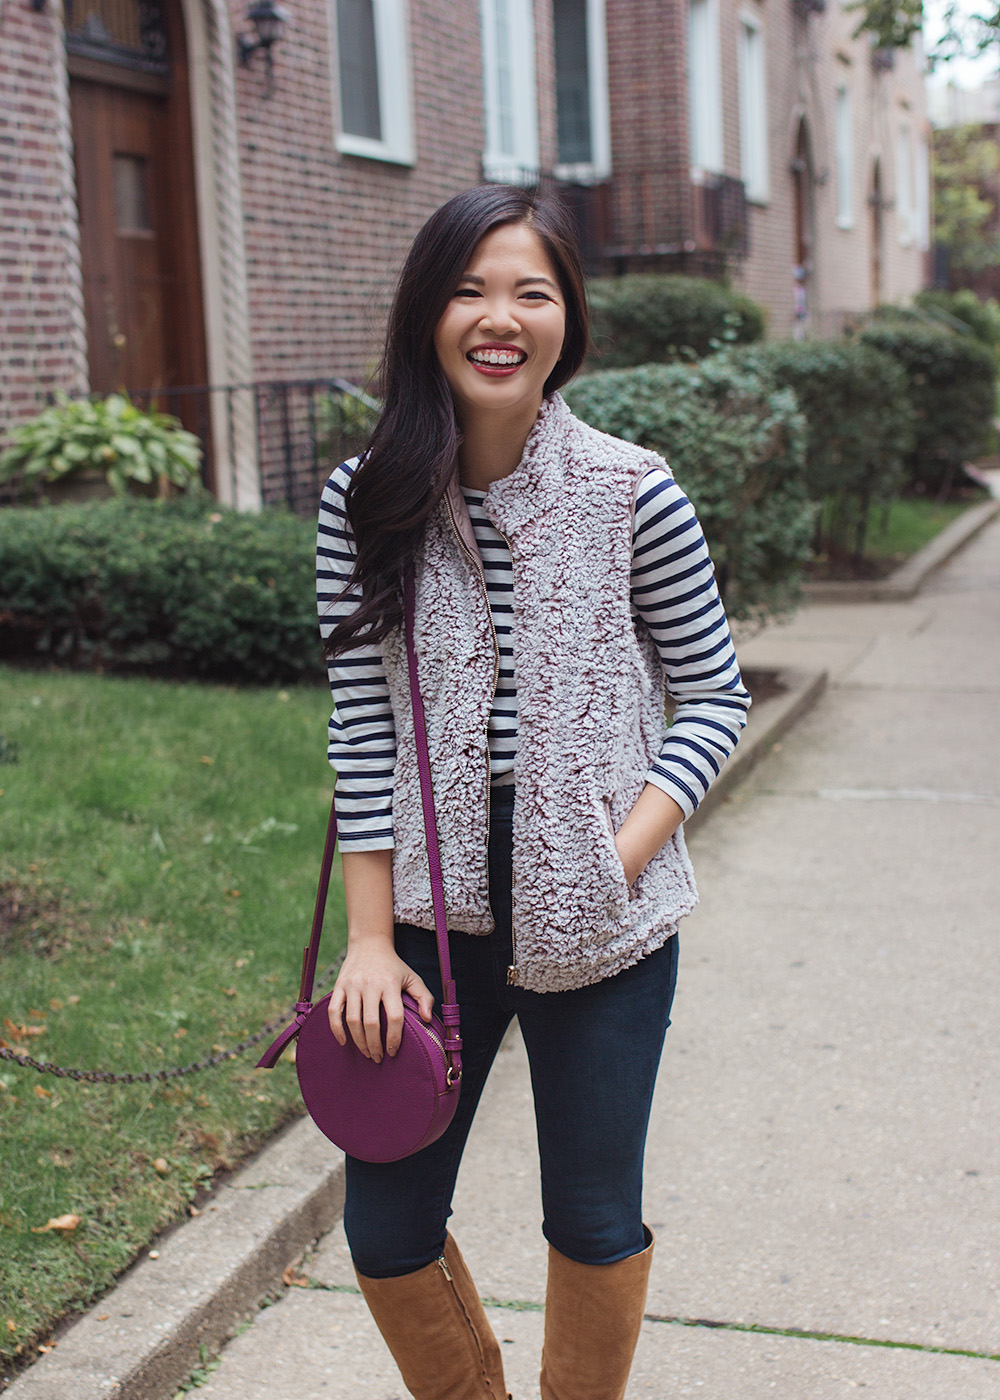 How to Wear a Fleece Vest for Fall